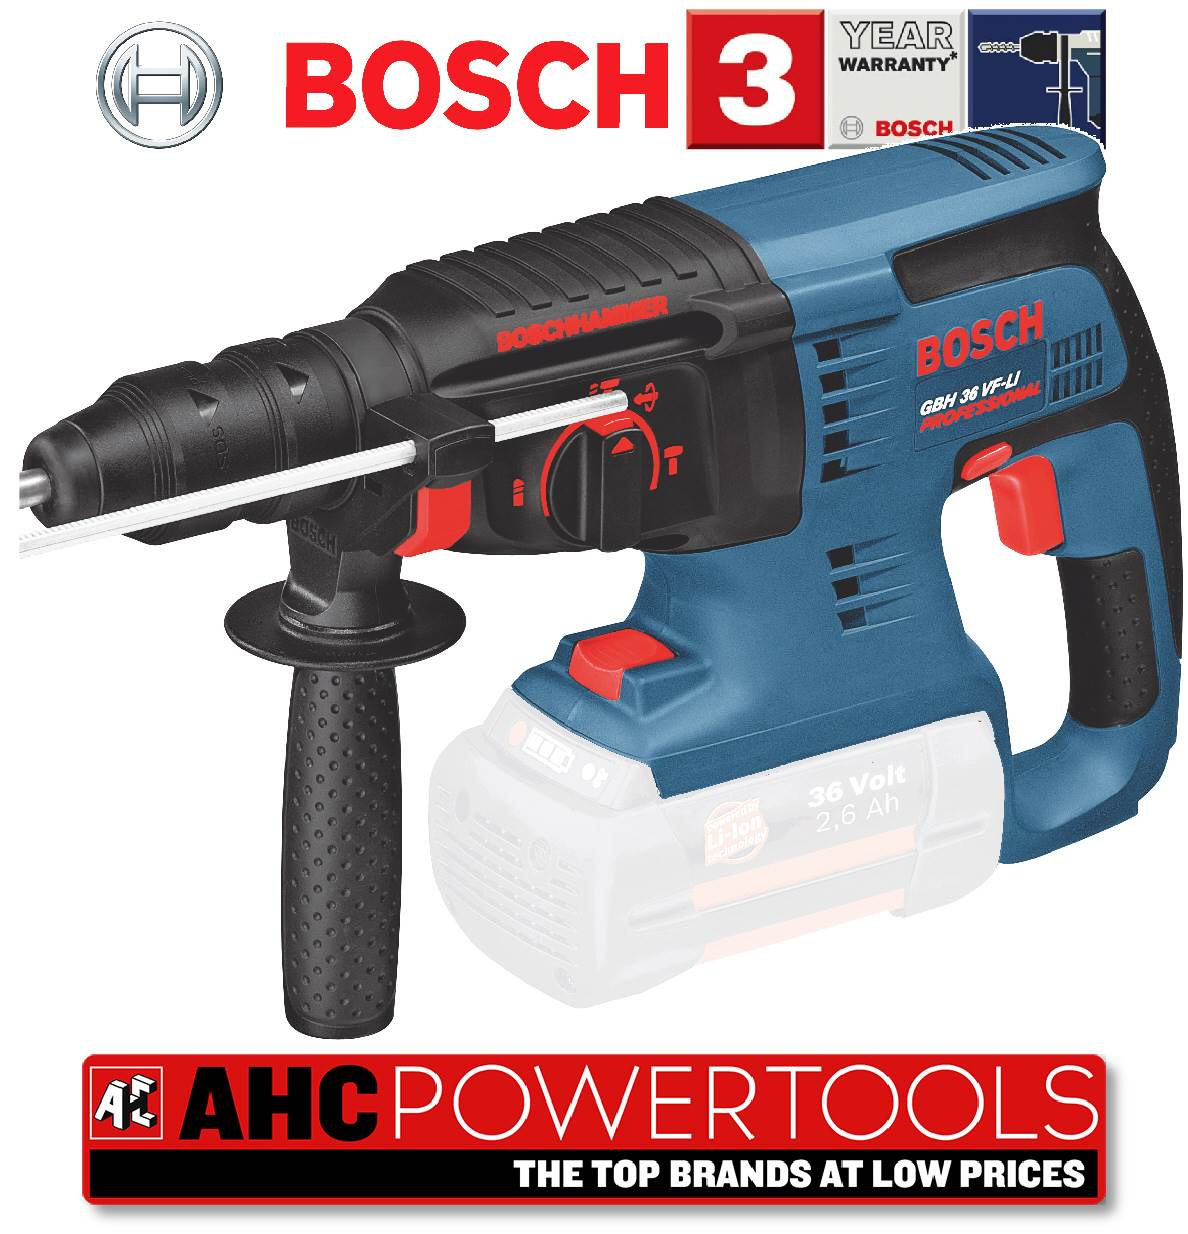 bosch gbh 36v sds rotary hammer drill gbh 36 vf li gbh36vfli body only. Black Bedroom Furniture Sets. Home Design Ideas